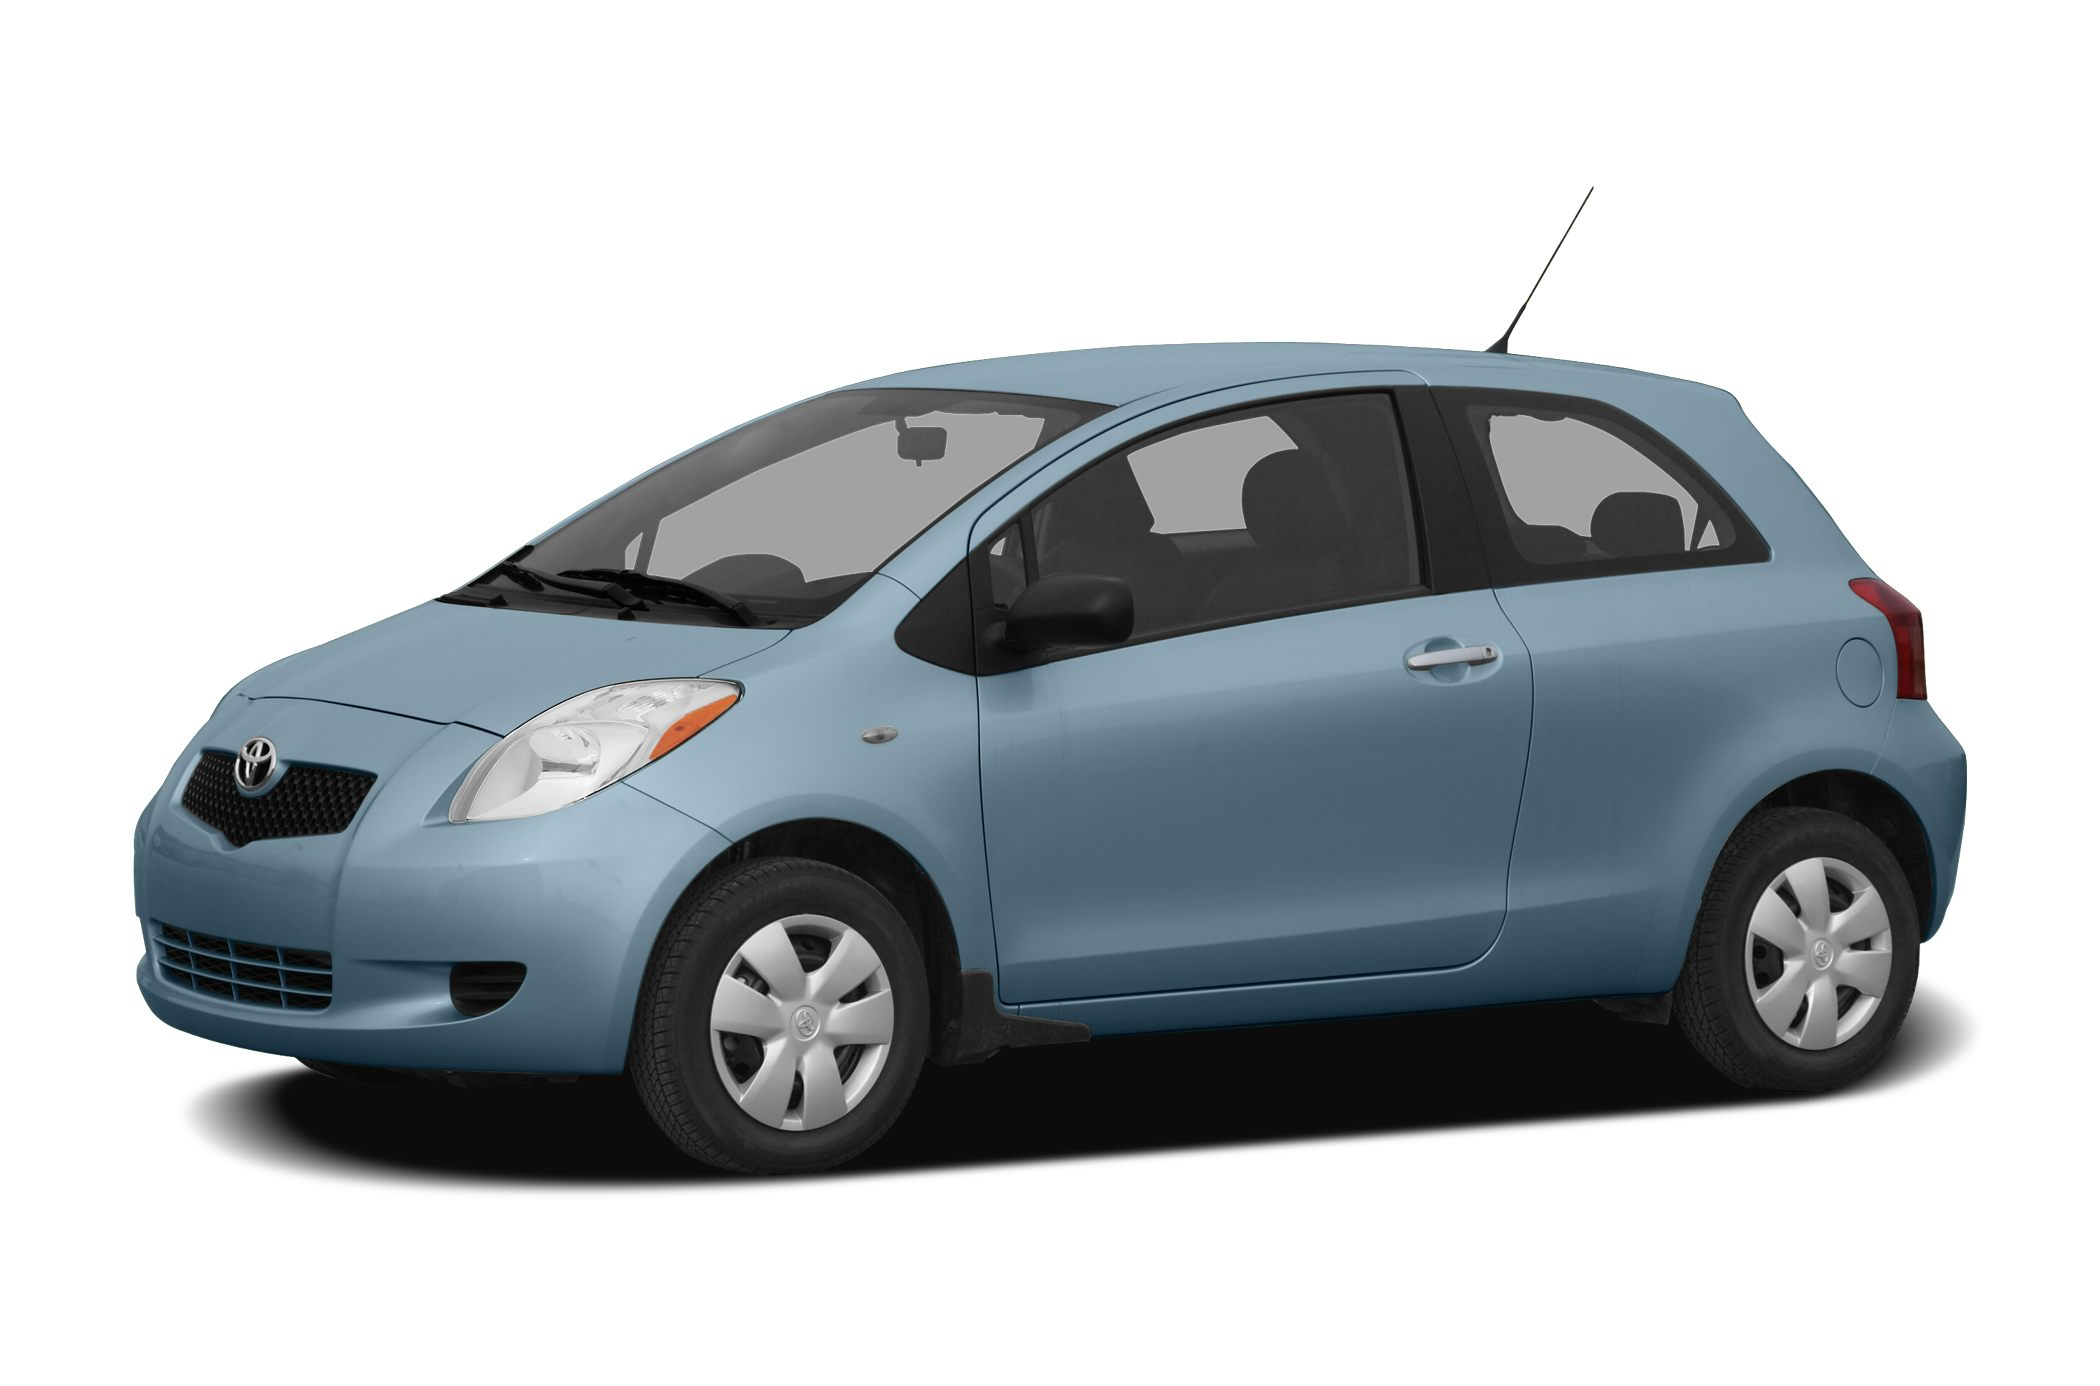 2007 Toyota Yaris Base Less than 100k Miles Includes a CARFAX buyback guarantee Great MPG 40